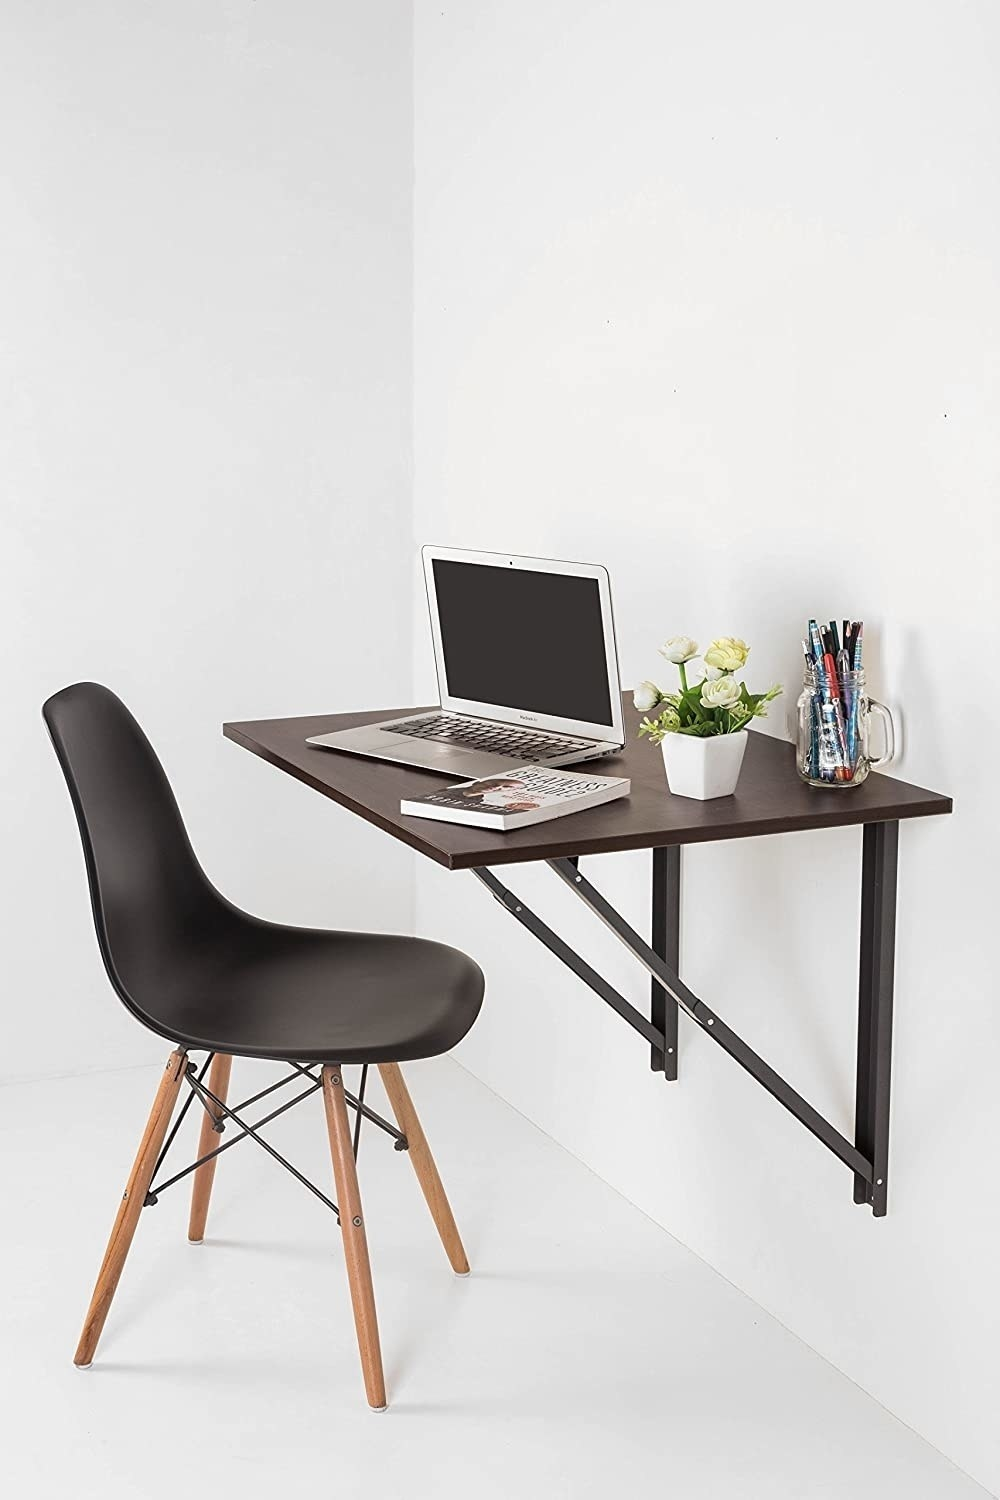 A black folding desk mounted to the wall.